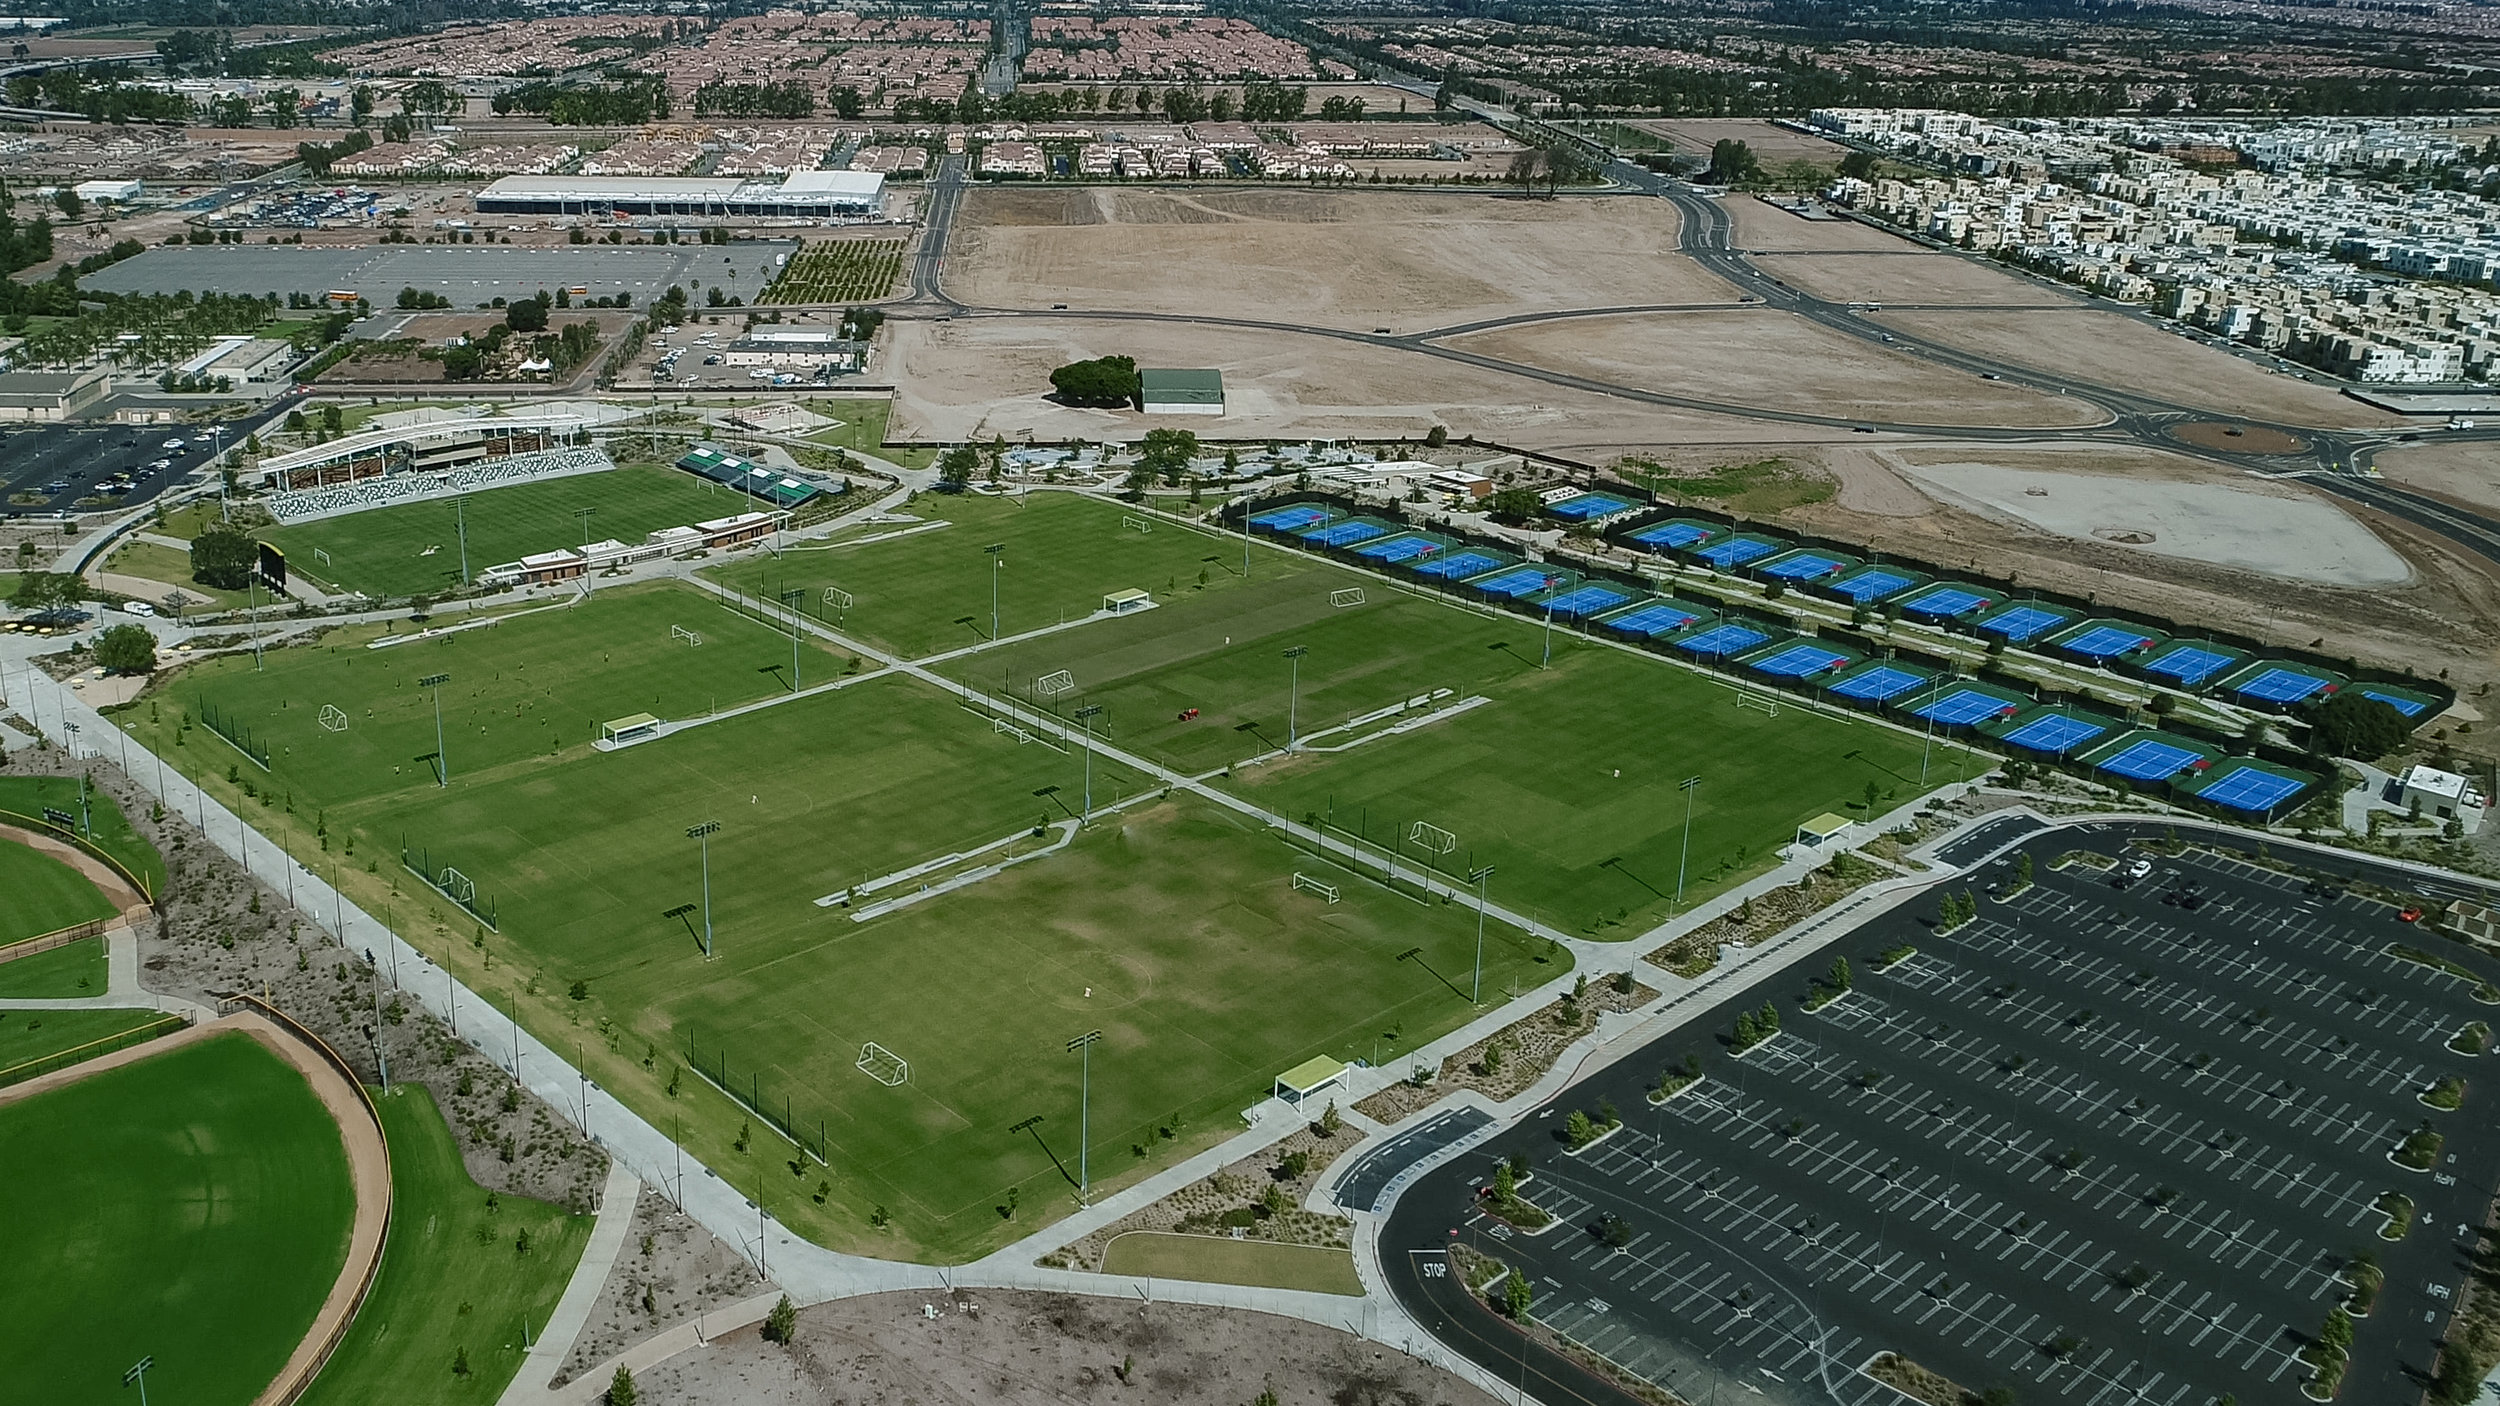 Full OCGP Sports Park Jeffrey L. Bruce 4K_3.jpg